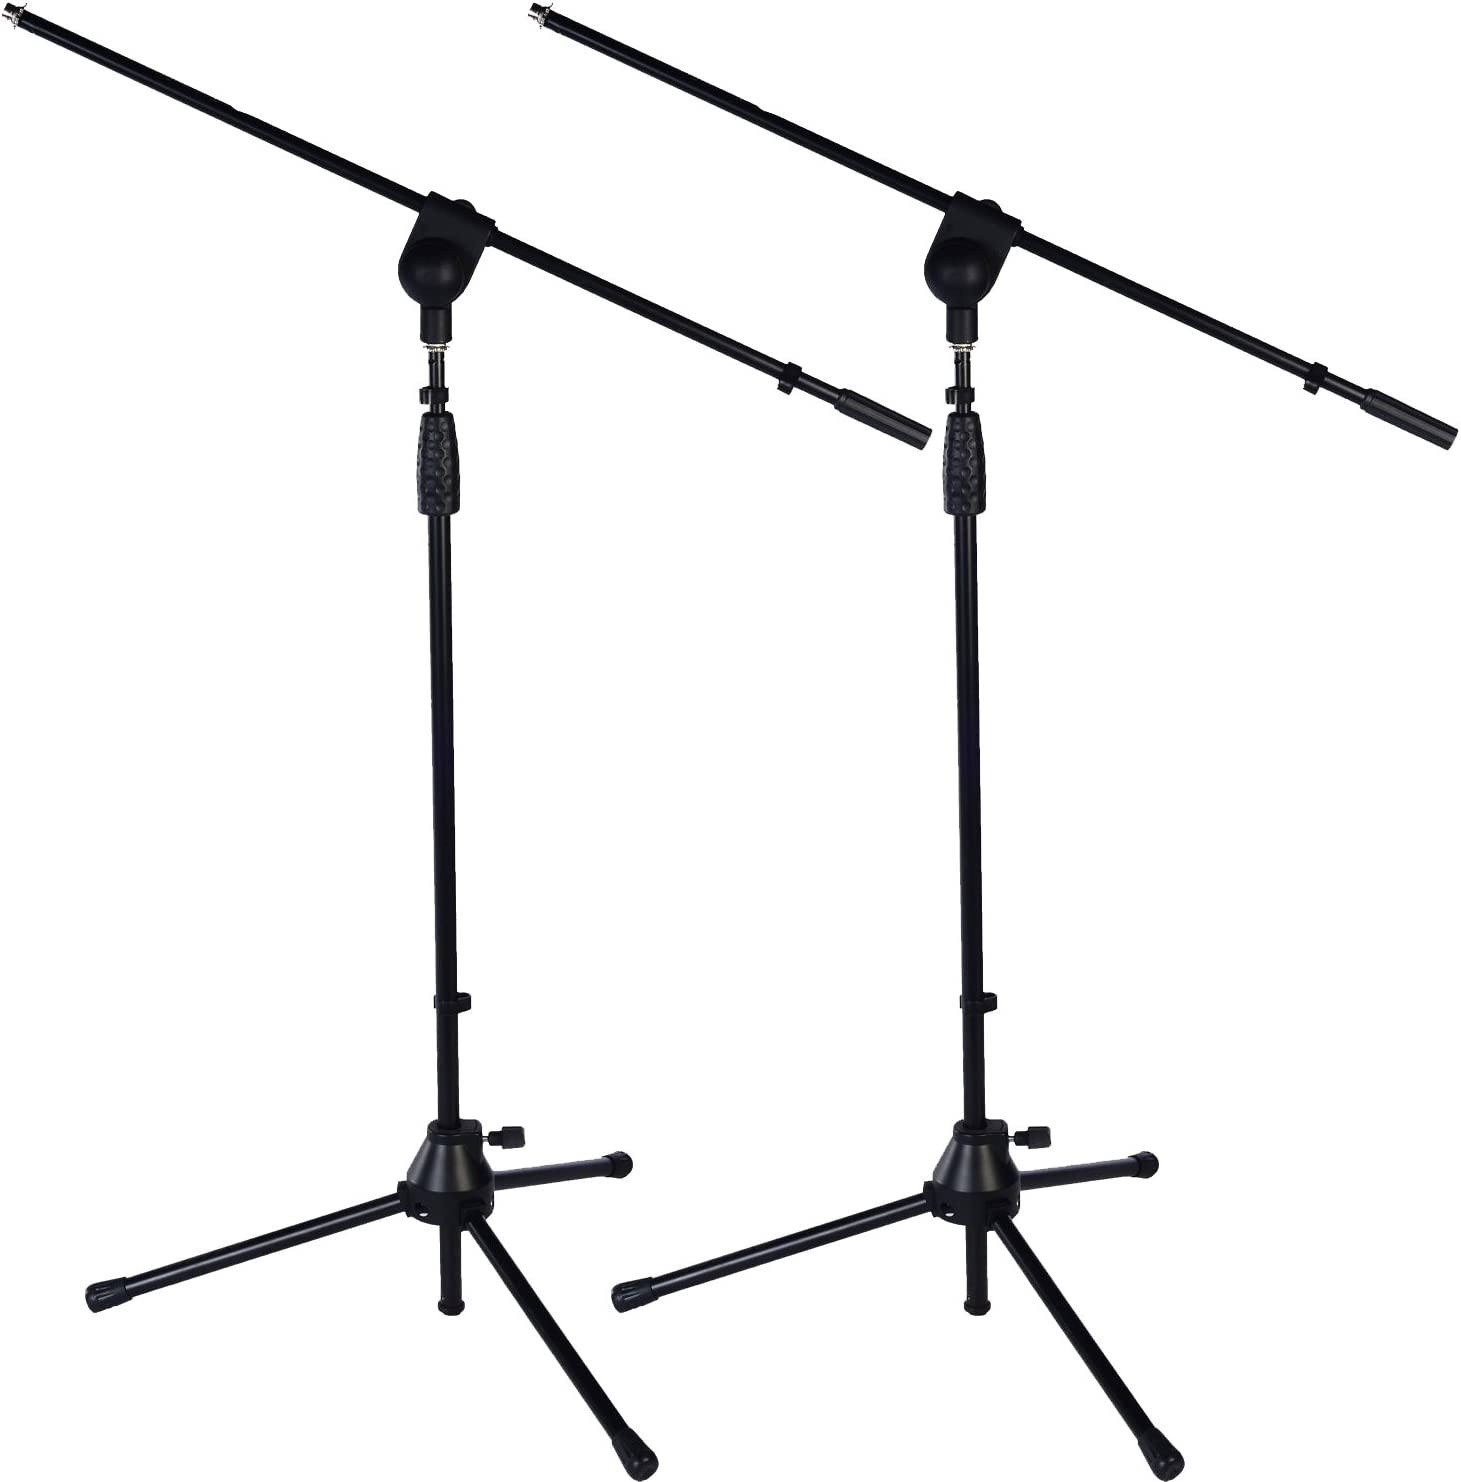 "2 Pack LyxPro Microphone Stand Boom Arm Tilting Rotating Floor Podium Stage or Studio Strong Durable And Foldable Height 38.5""- 66"" Extends Arm to 29 3/8"" Comes With 3/8"" and 5/8"" mount Adapters TMS-1 612rKwktDSL"